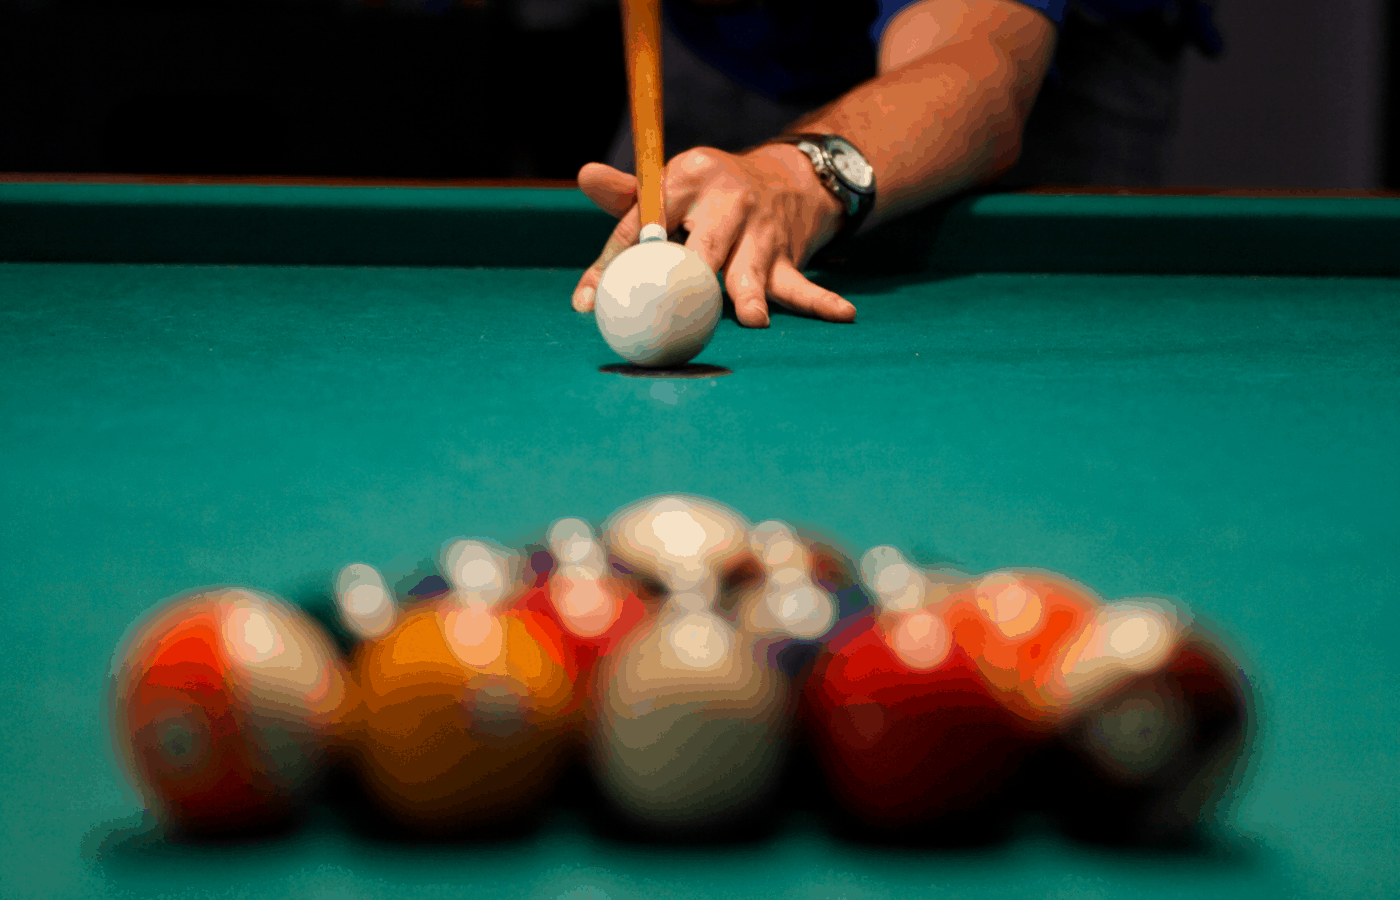 does playing snooker make you better at pool